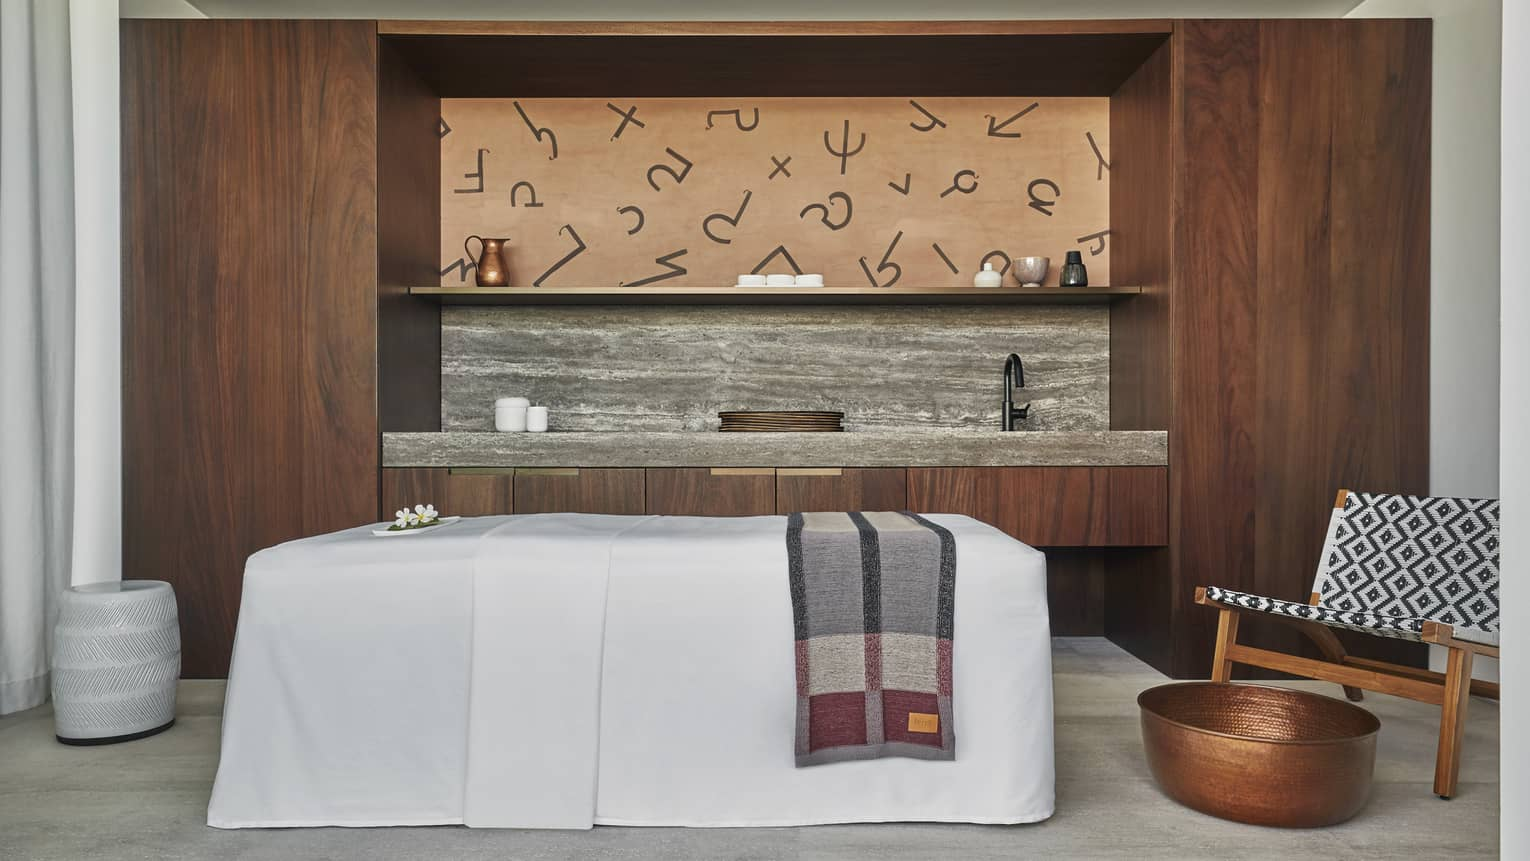 A Four Seasons Resort Los Cabos spa room is decorated with a walnut wooden accent wall with a gray concrete shelf, a mid century modern chair with a blue and white tribal pattern and a massage table covered with a white cloth